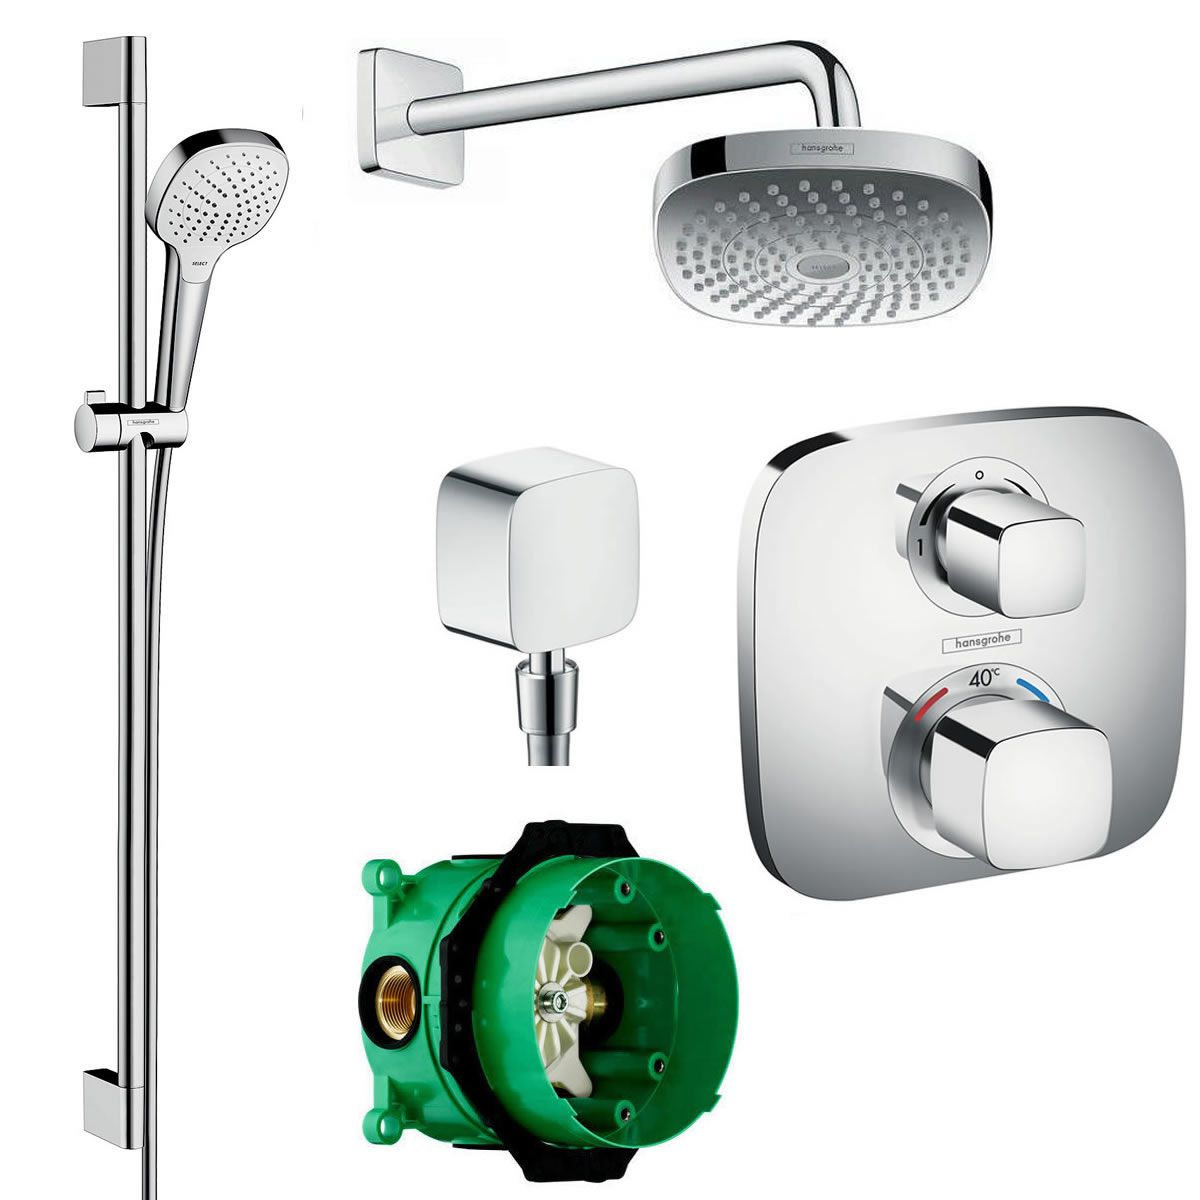 hansgrohe soft cube ecostat e valve with croma select 180 overhead shower and select e rail kit. Black Bedroom Furniture Sets. Home Design Ideas